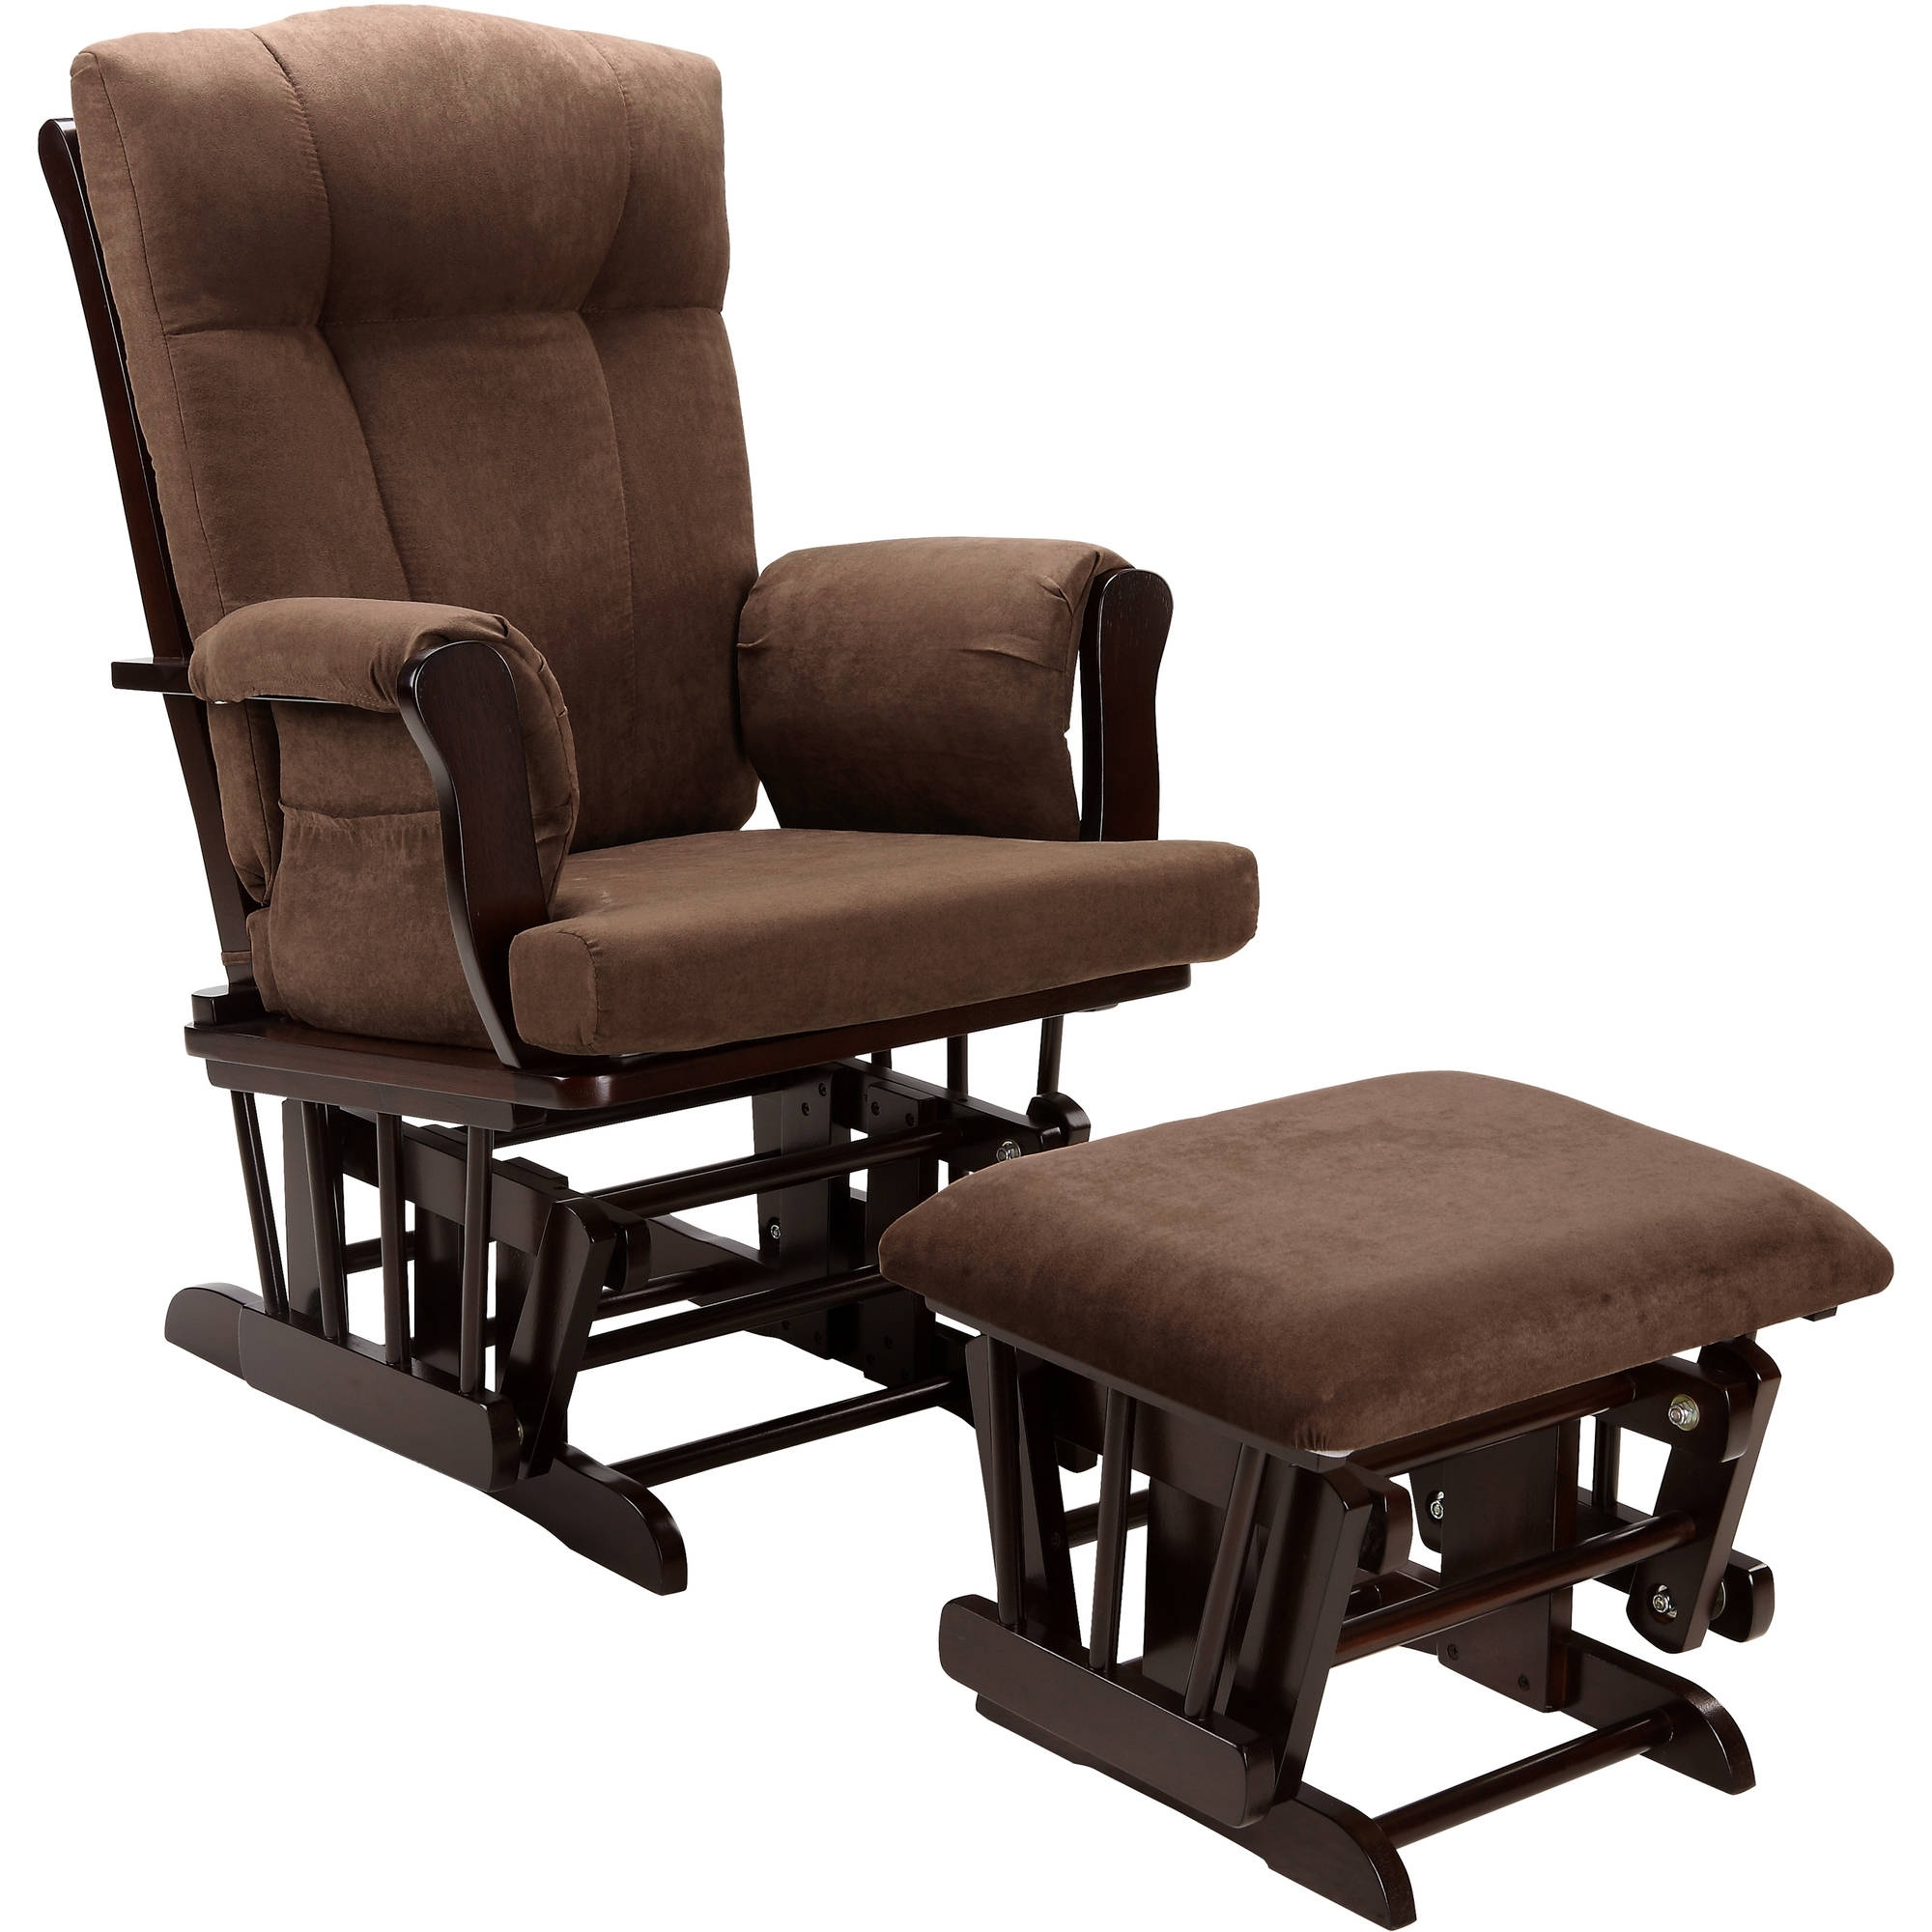 Baby Relax Glider Rocker And Ottoman Espresso With Chocolate With Rocking Chairs With Ottoman (#3 of 15)